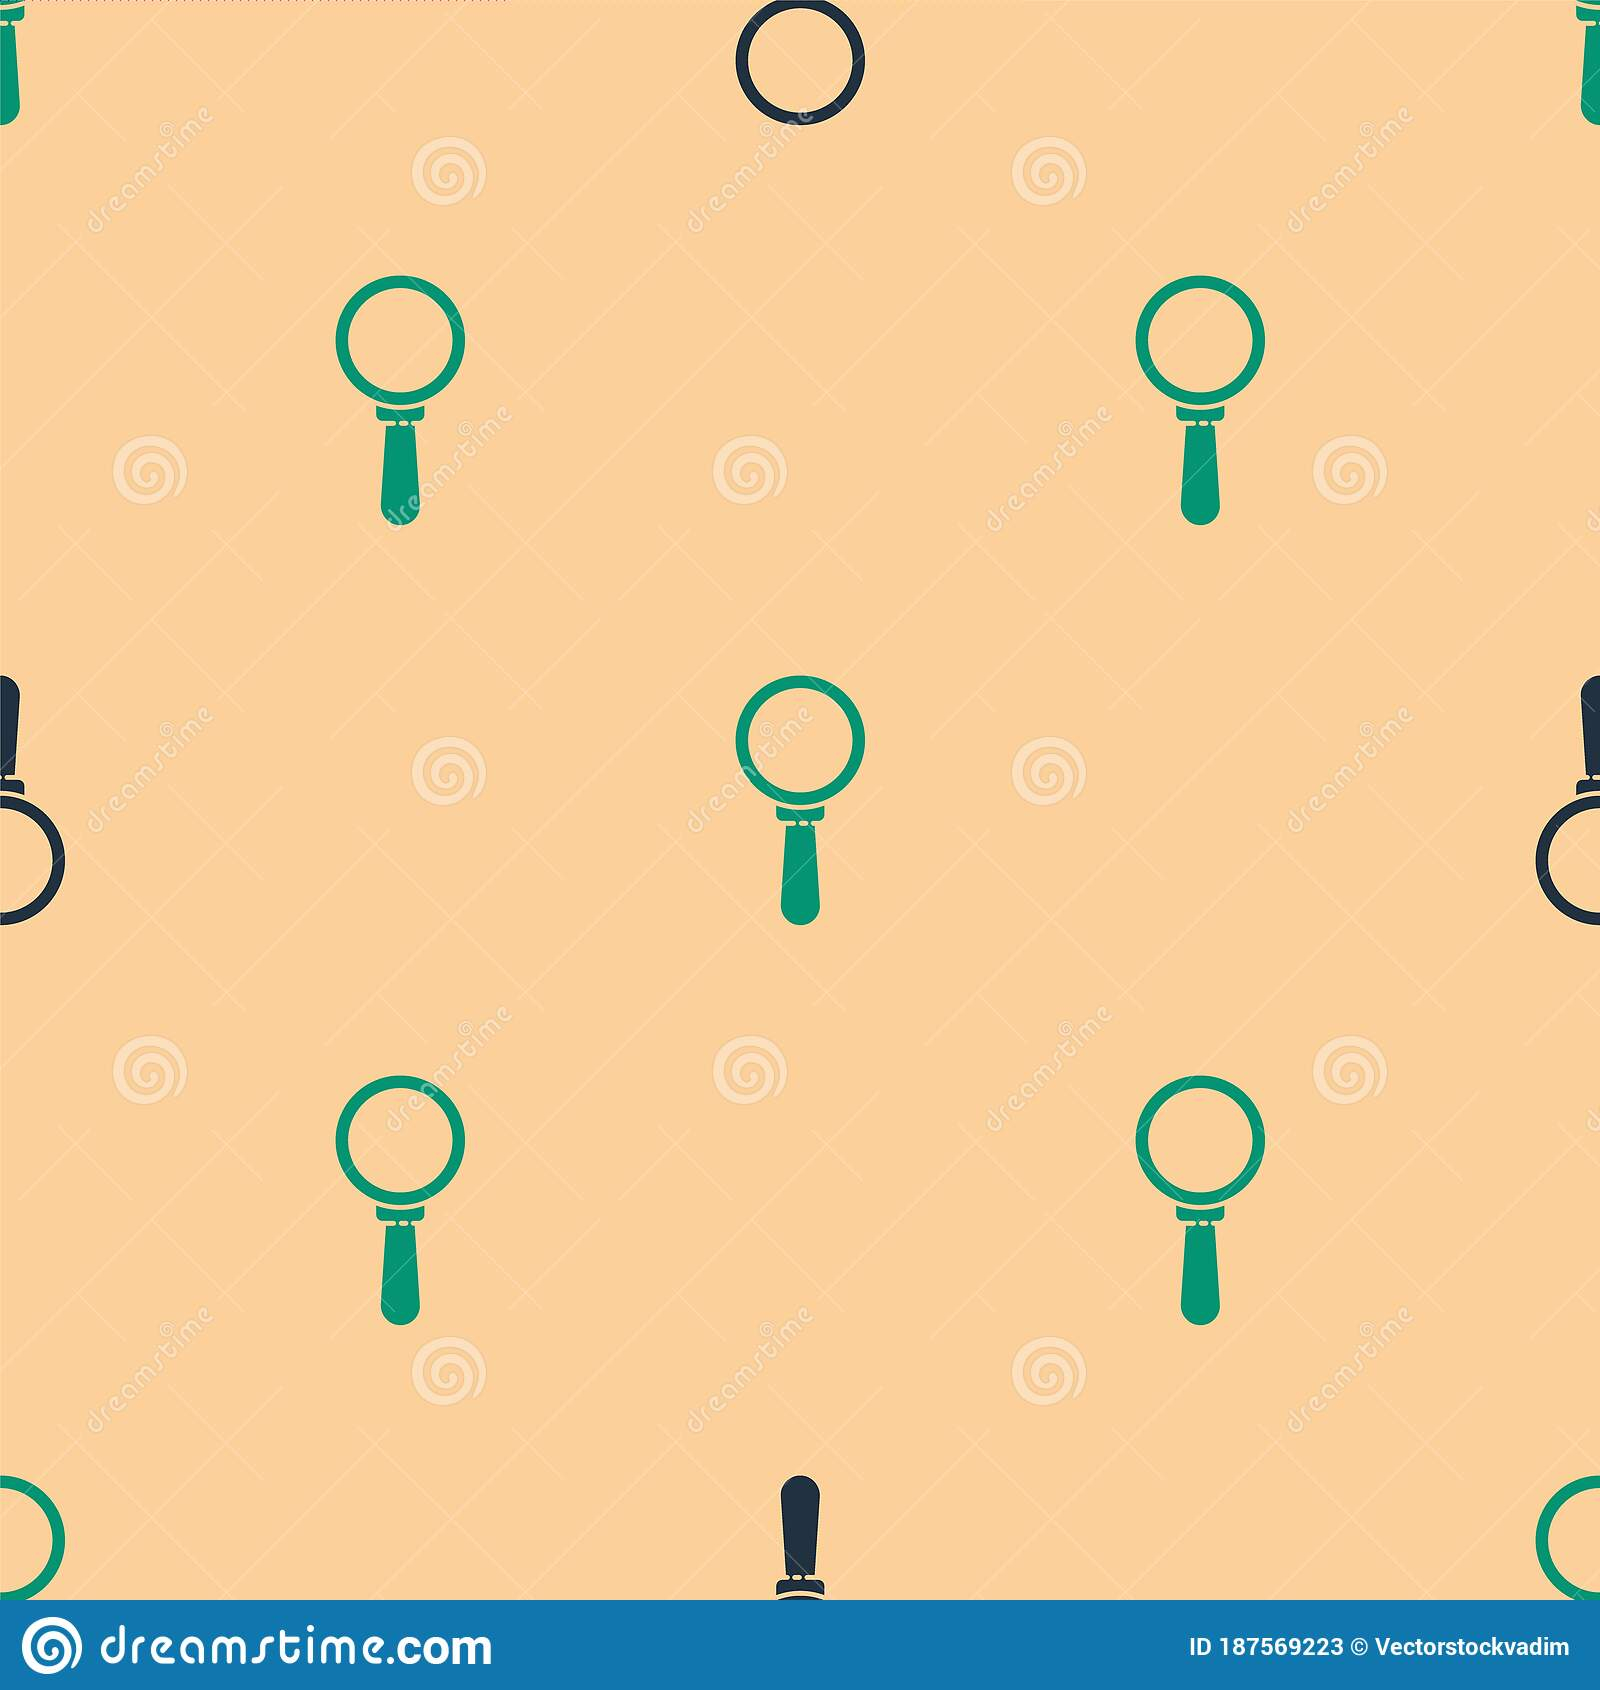 green black magnifying glass icon isolated seamless pattern beige background search focus zoom business symbol vector